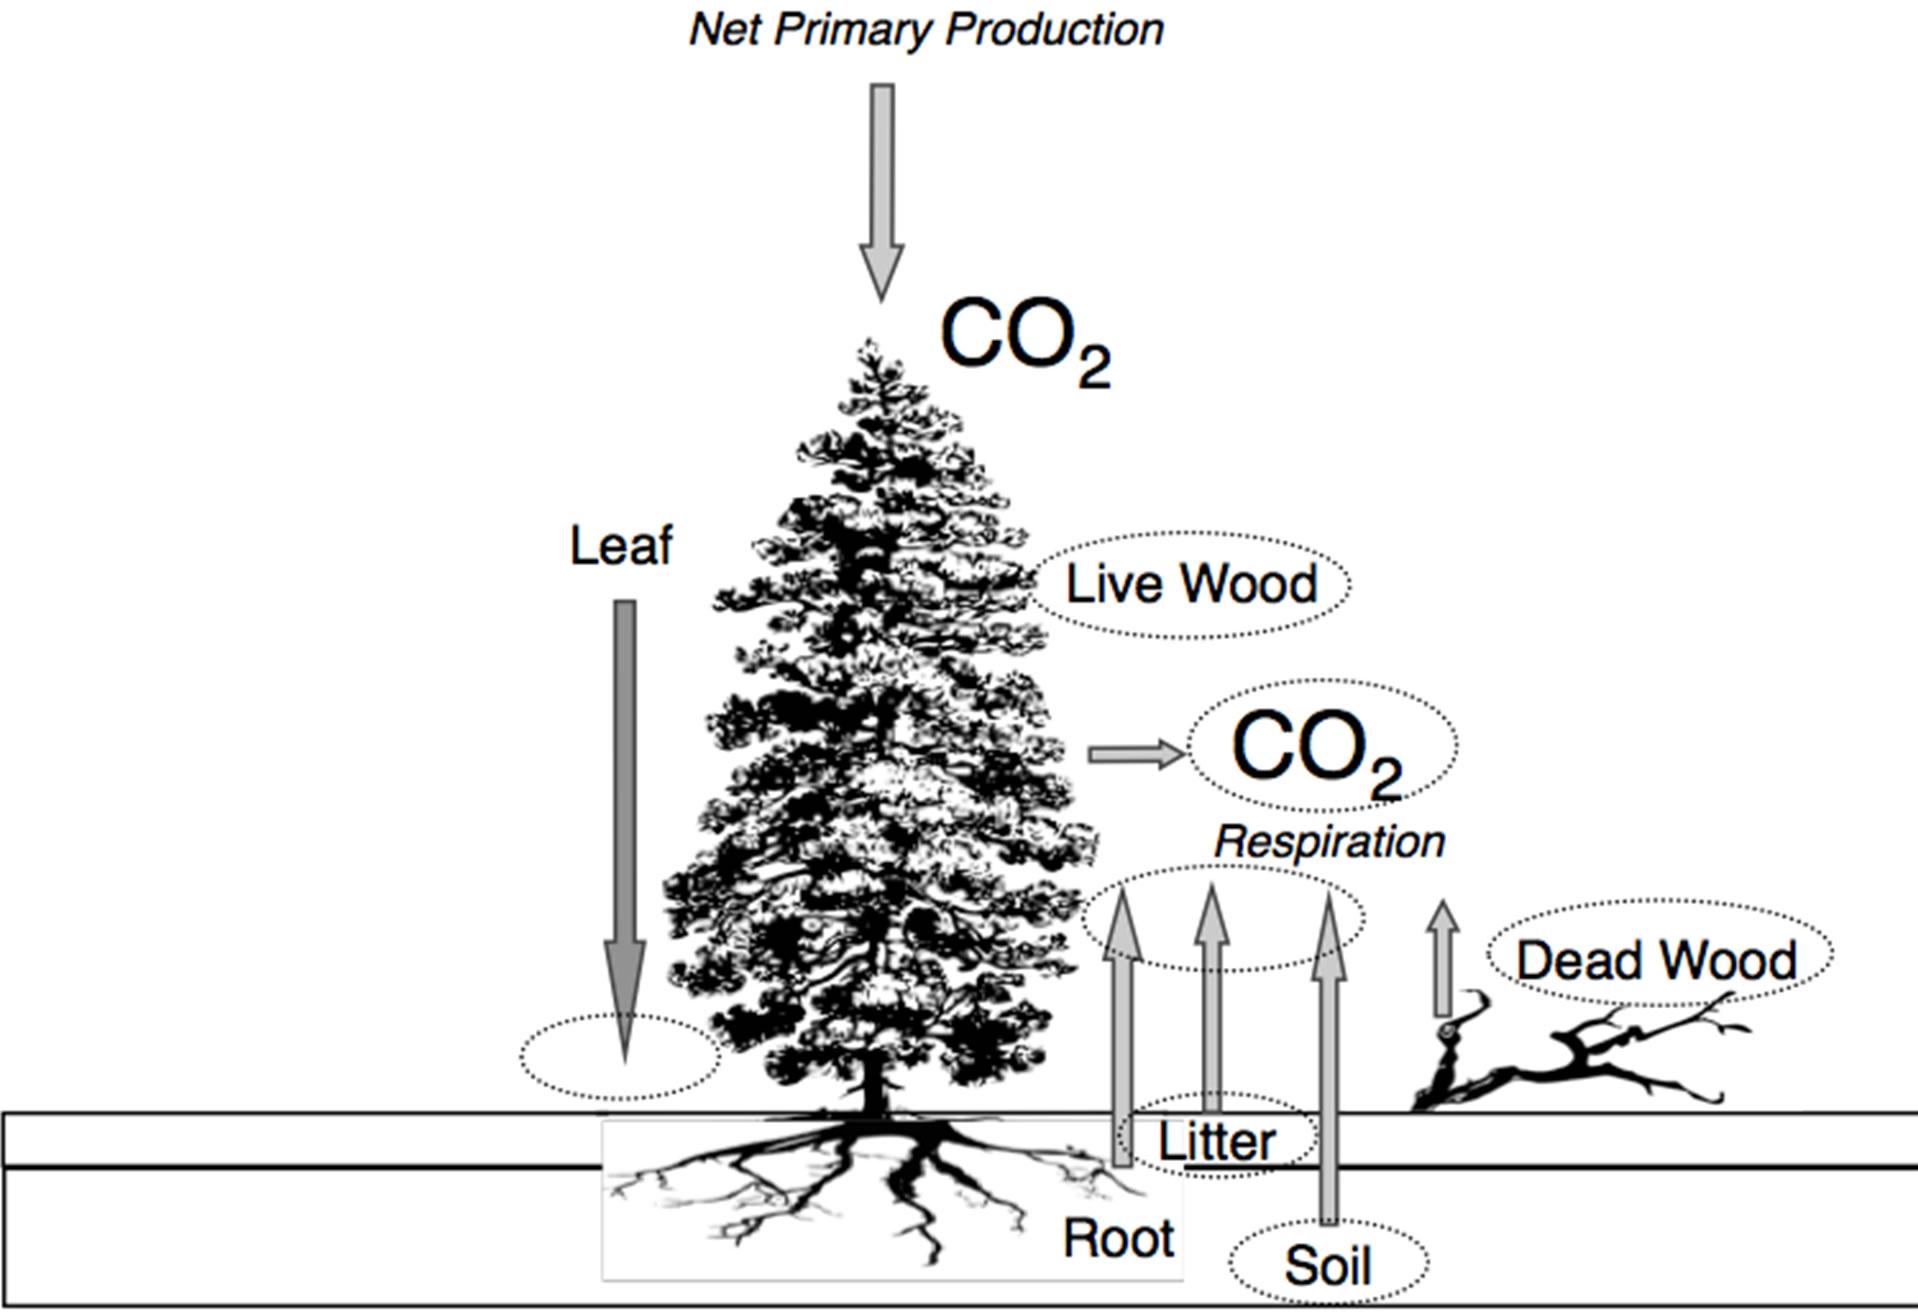 Net Primary Production And Carbon Cycling In Coast Redwood